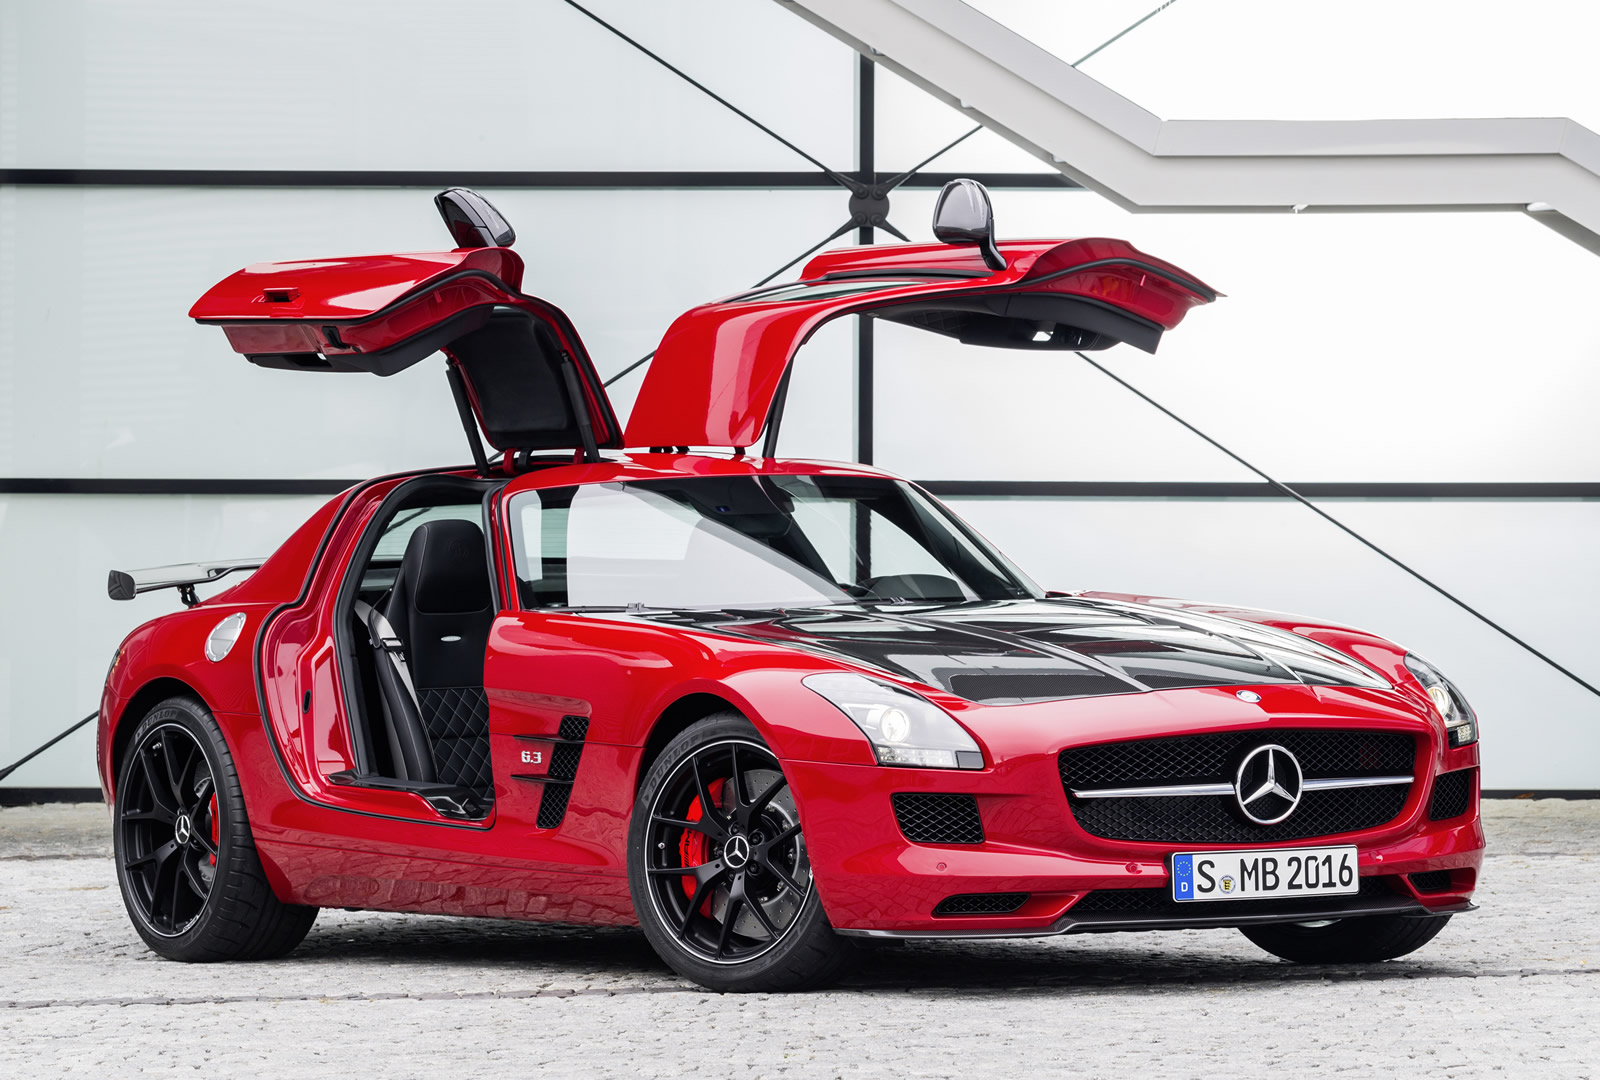 Mercedes-Benz Sls Amg Gt Final Edition #6